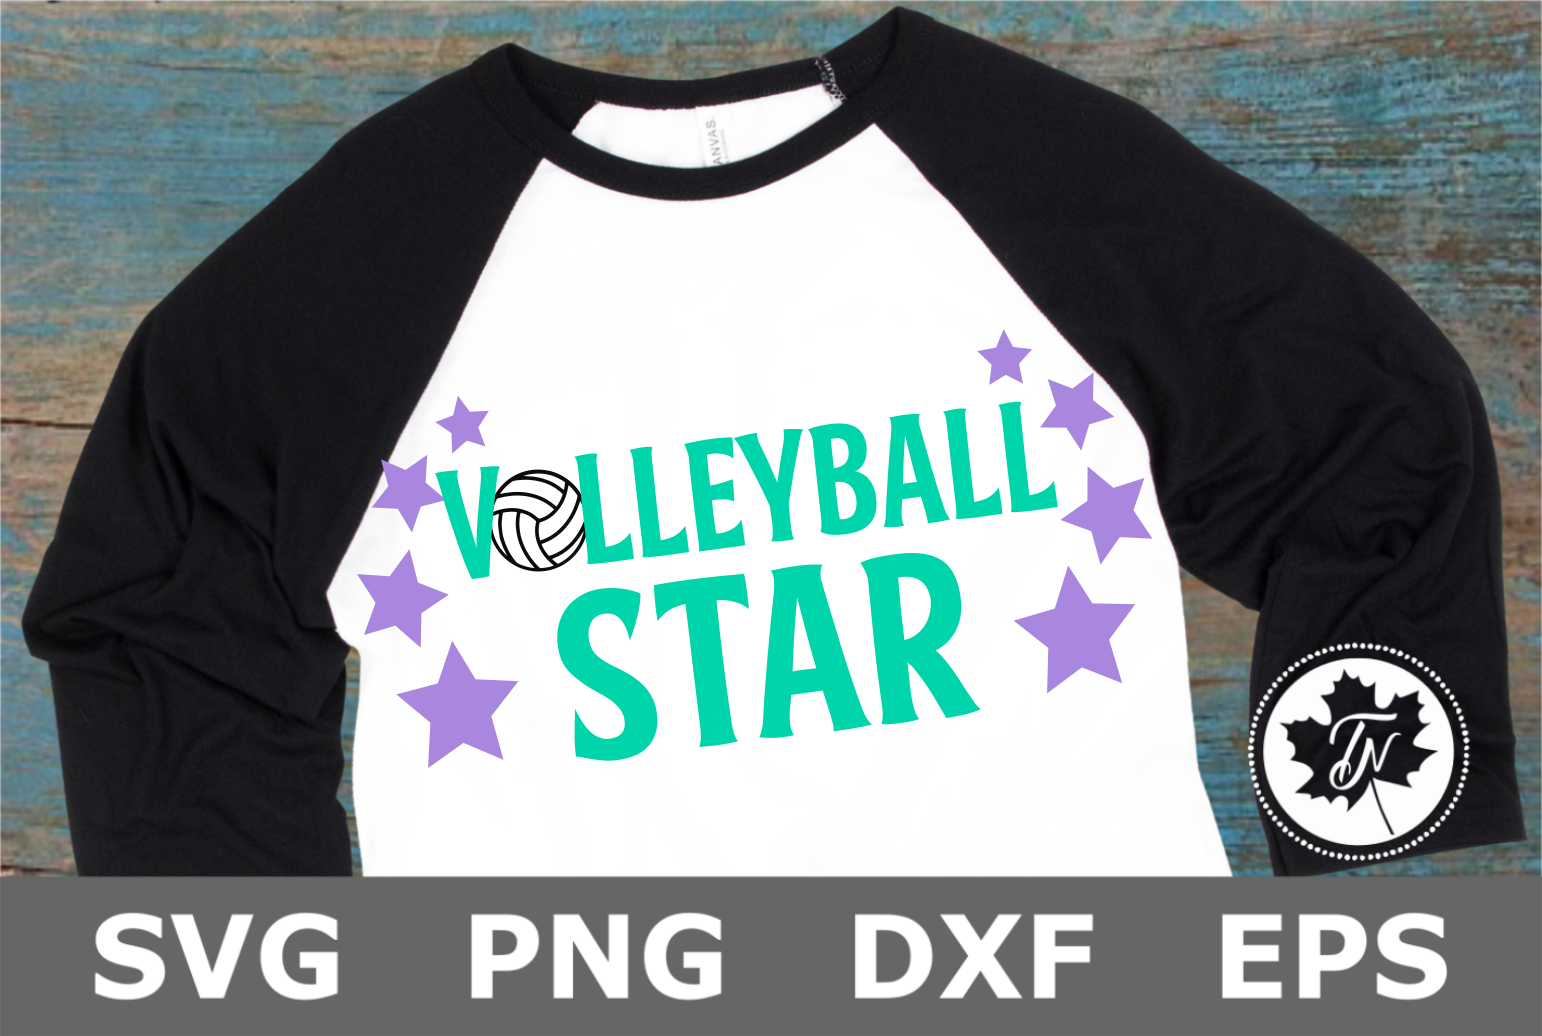 Volleyball Star - A Sports SVG Cut File example image 2